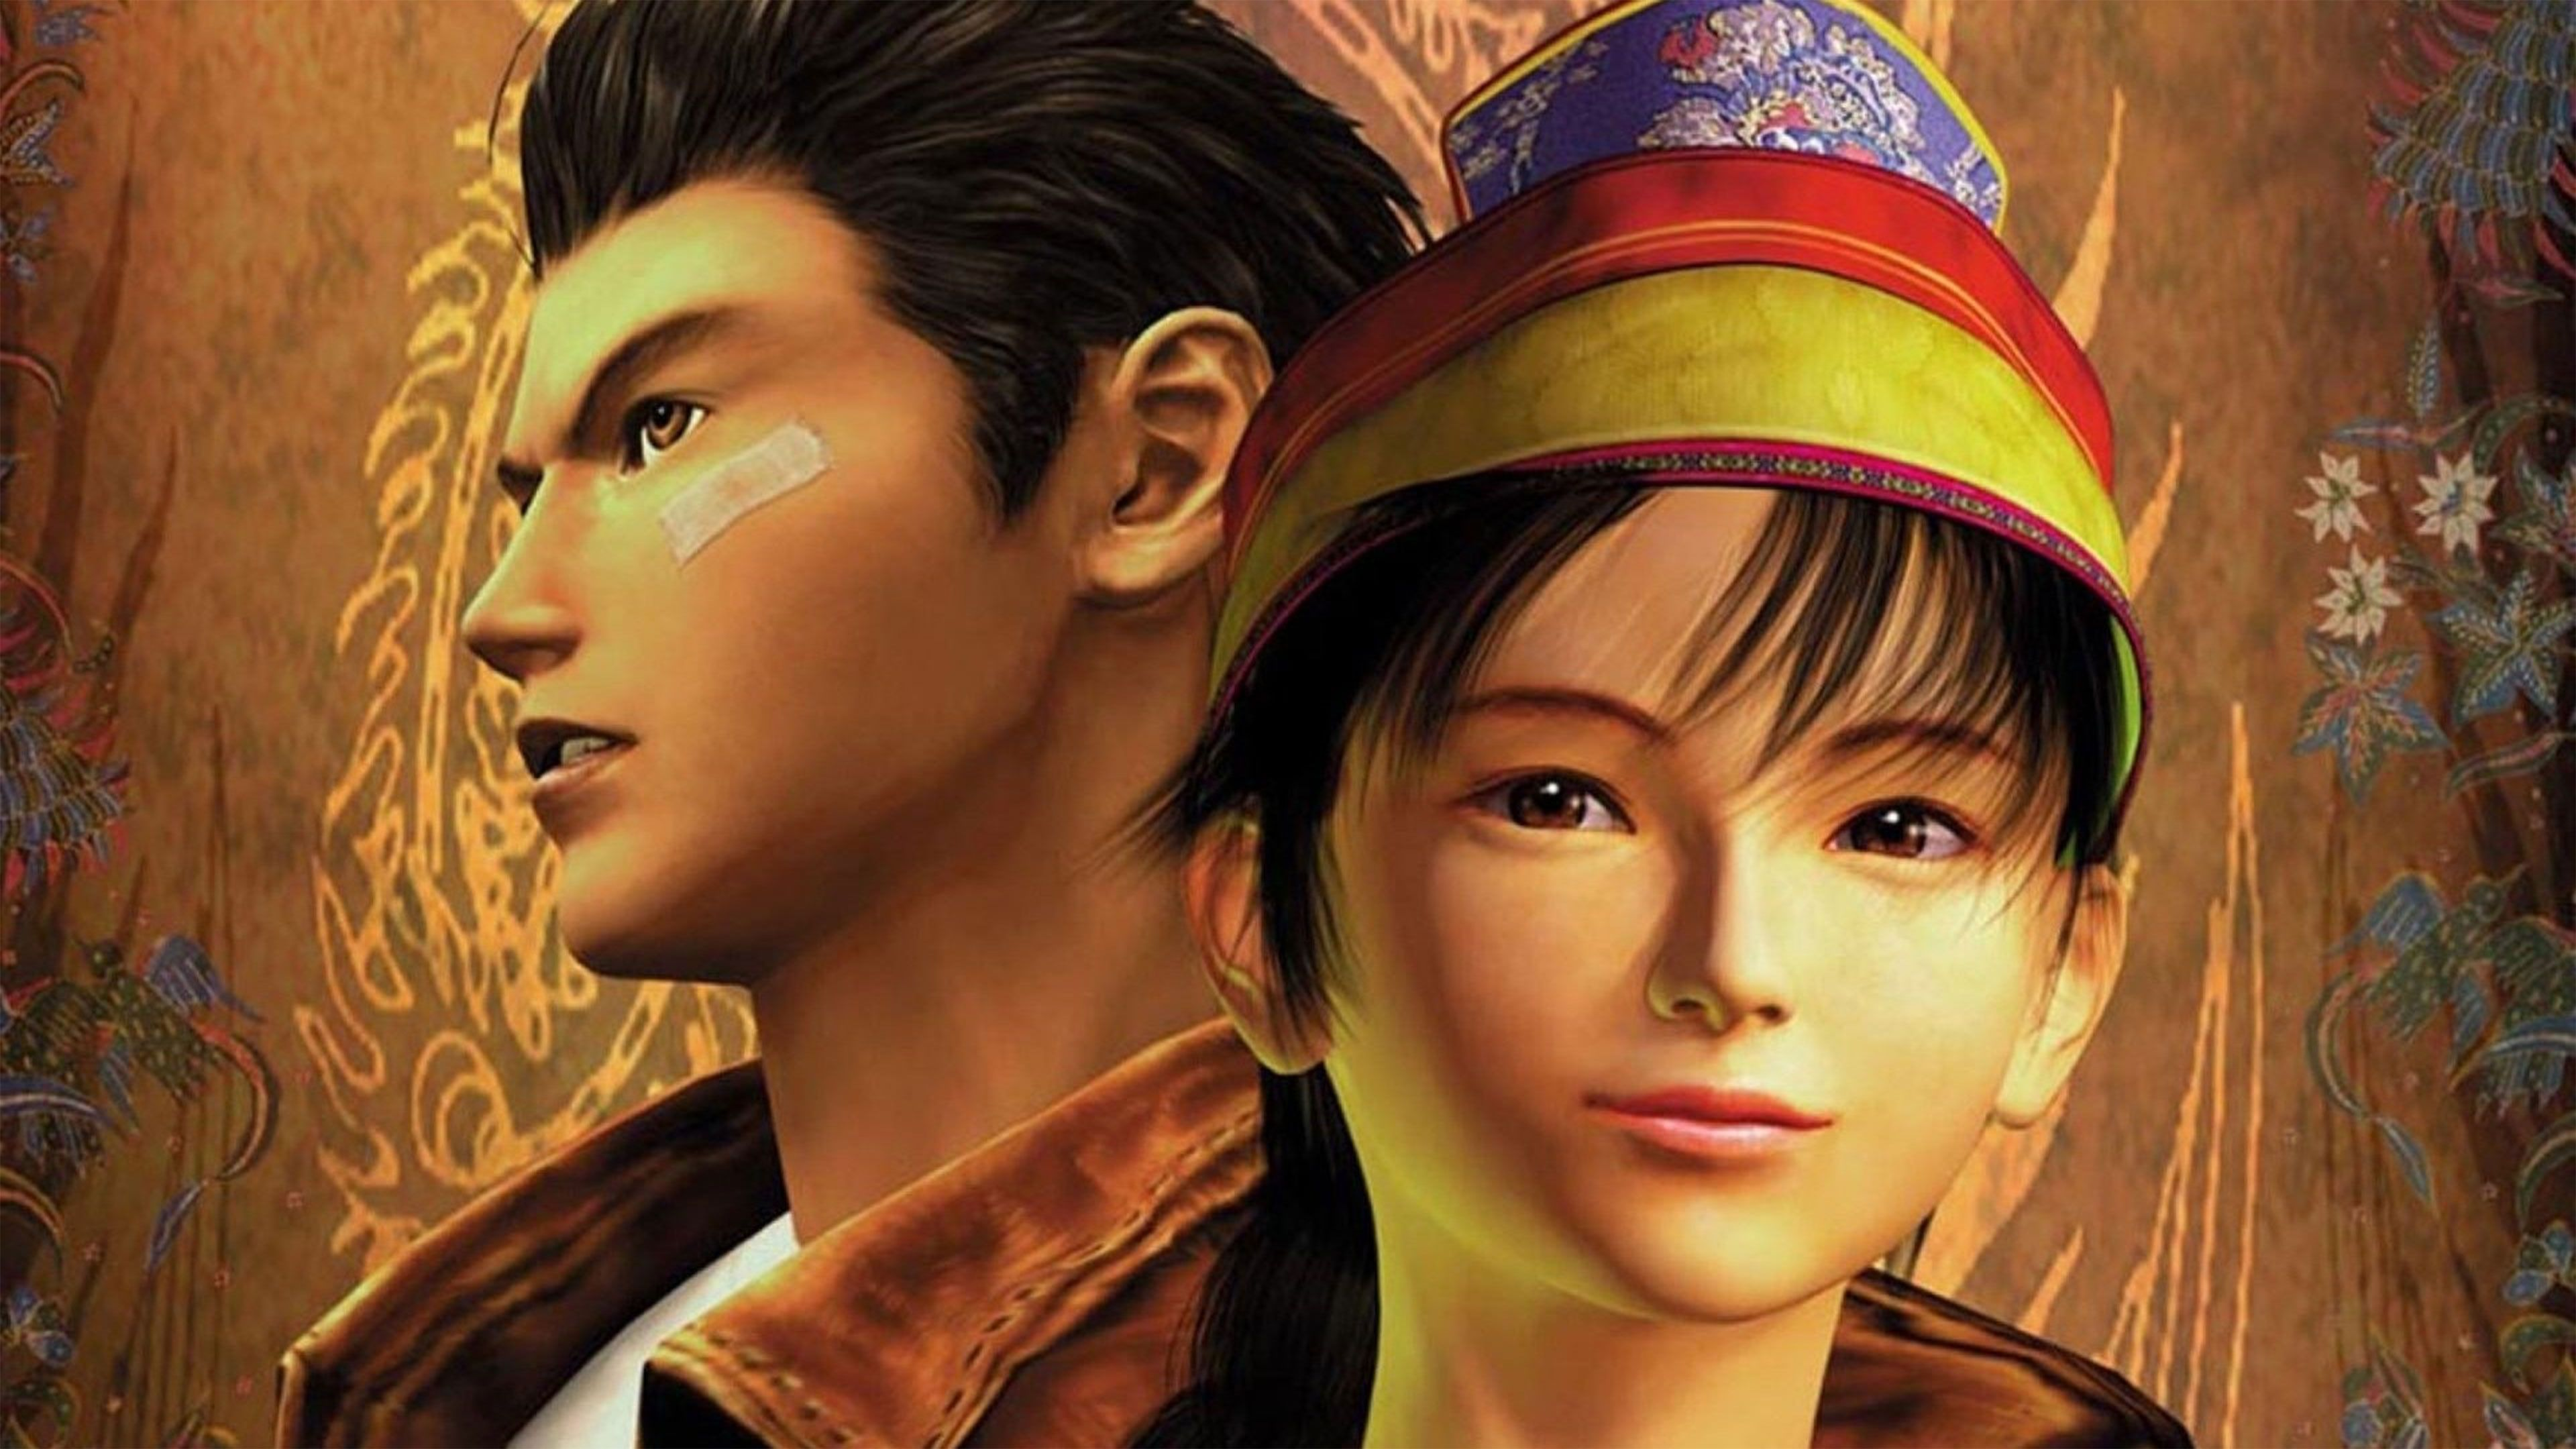 10 Hd Shenmue 3 Wallpapers You Need To Make Your Desktop Background